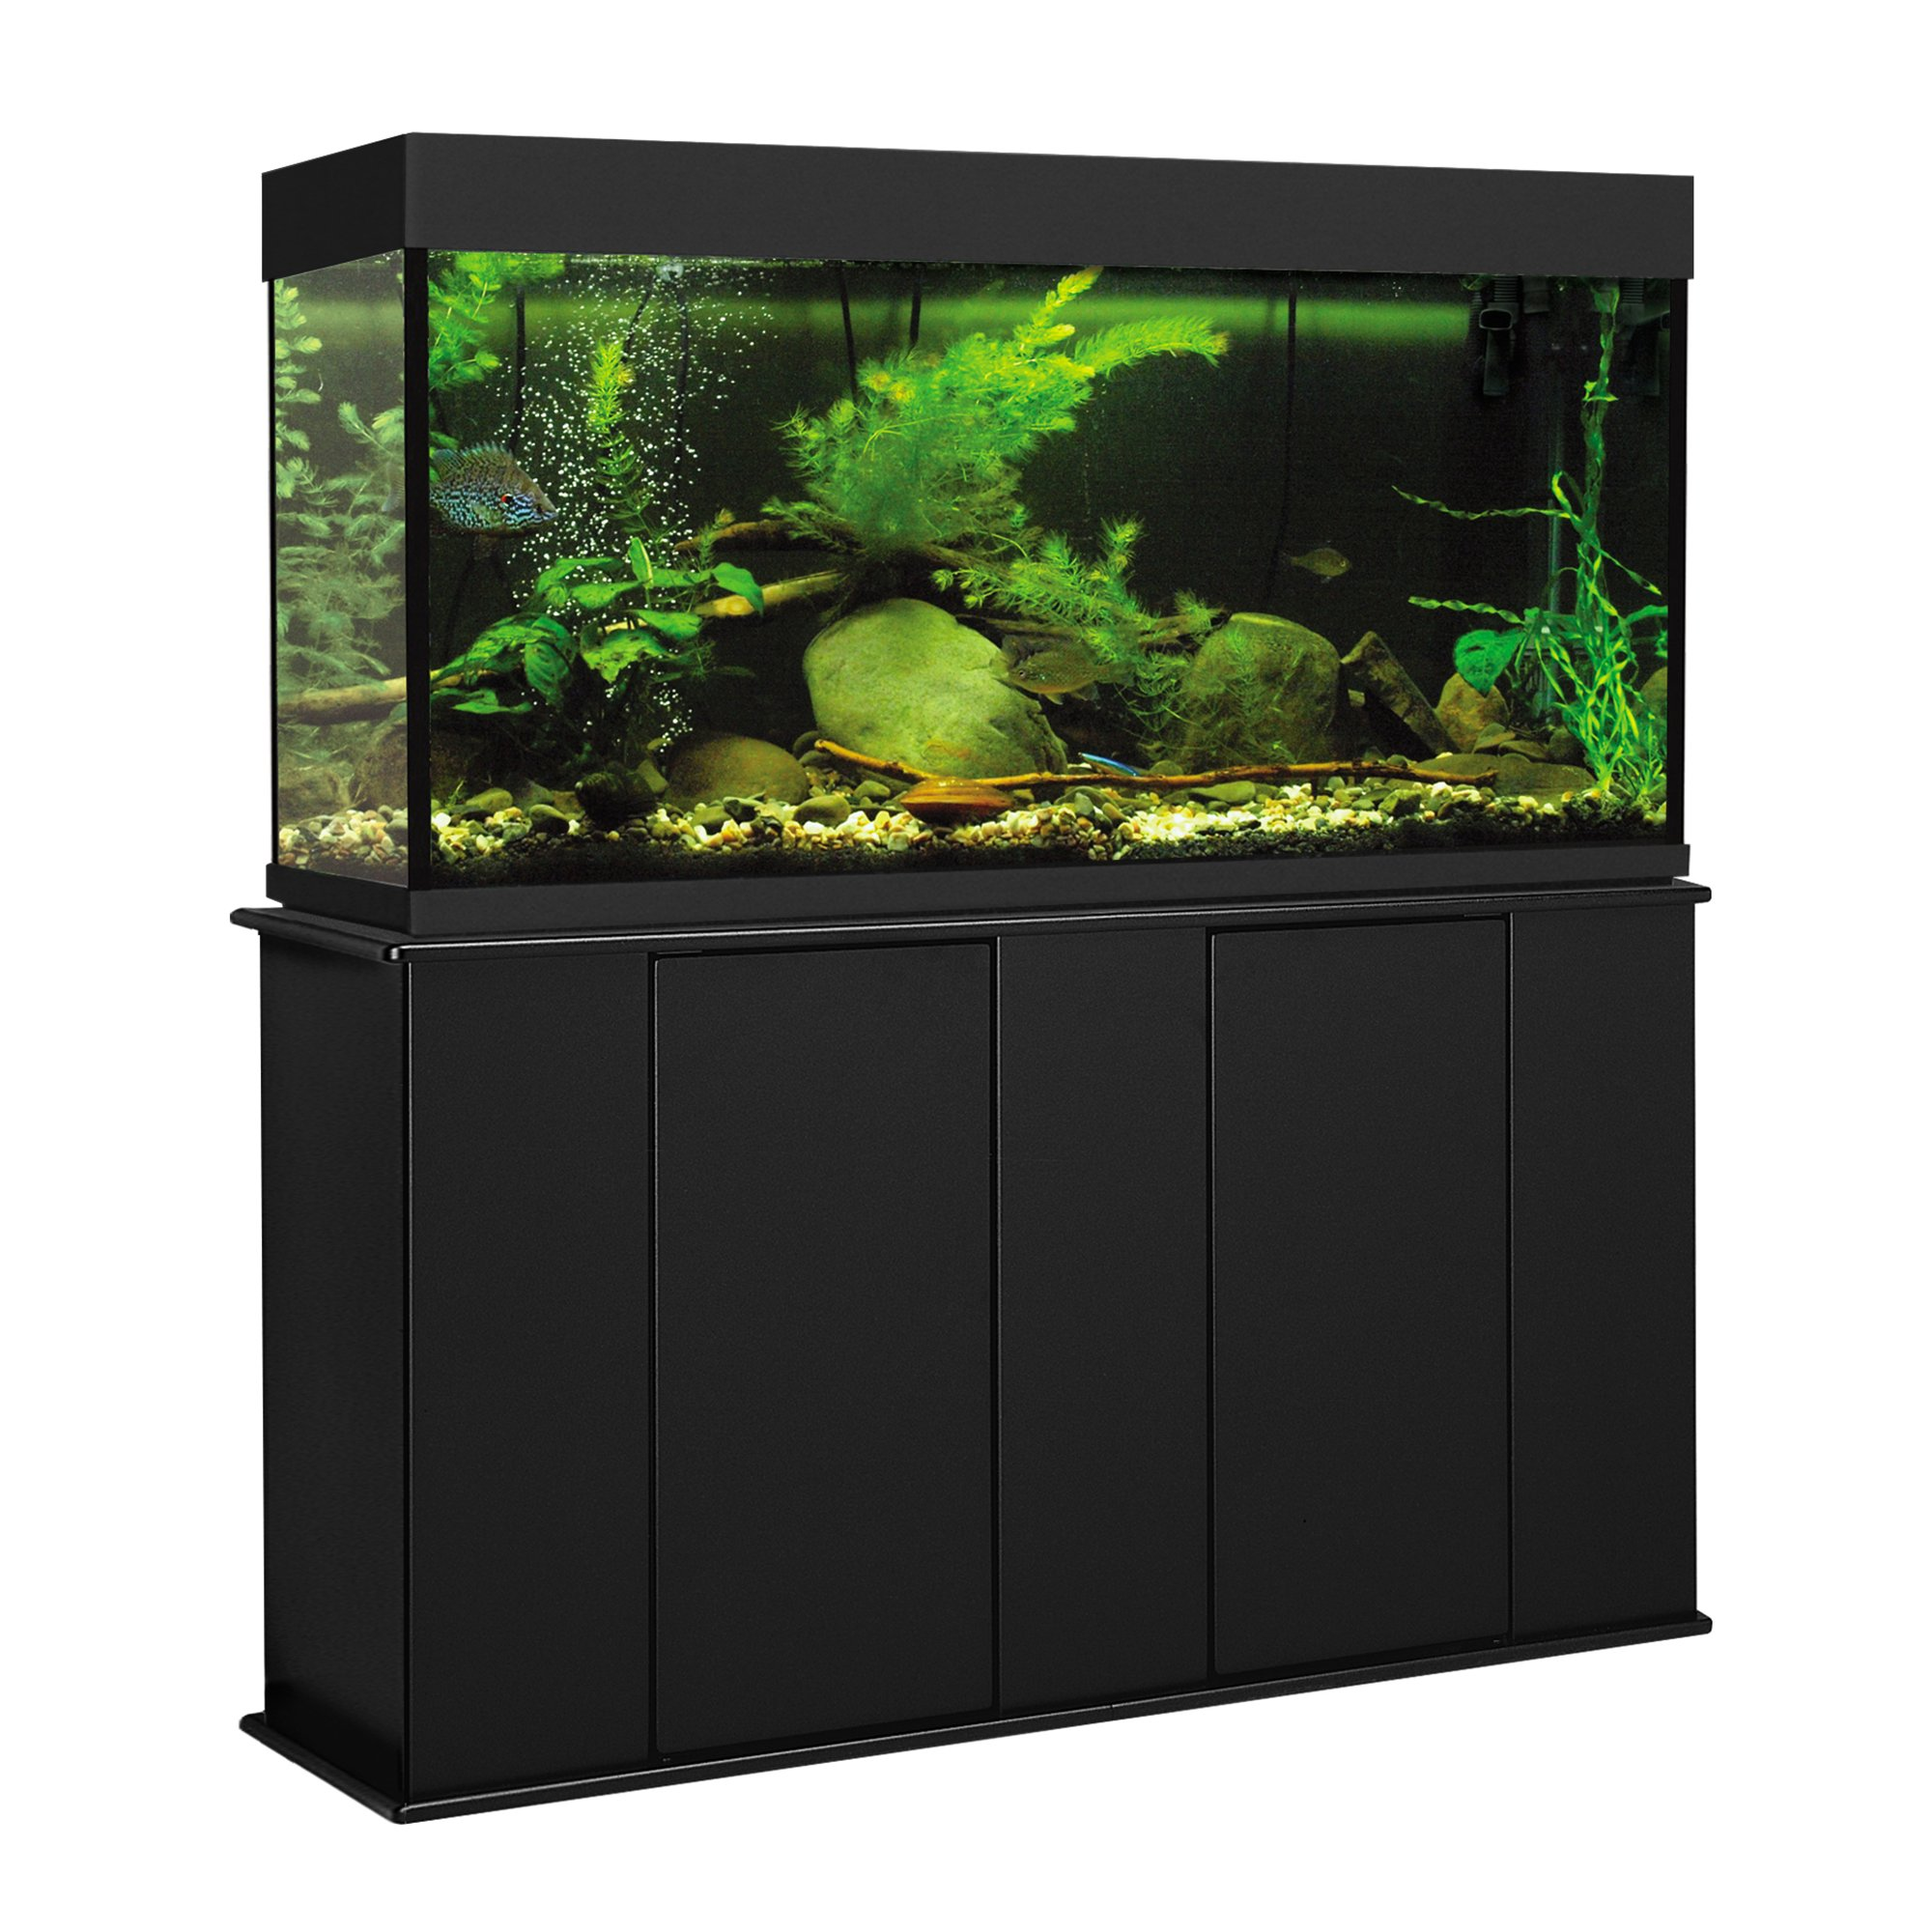 Aquatic fundamentals 55 gallon upright aquarium stand petco for Square fish tank